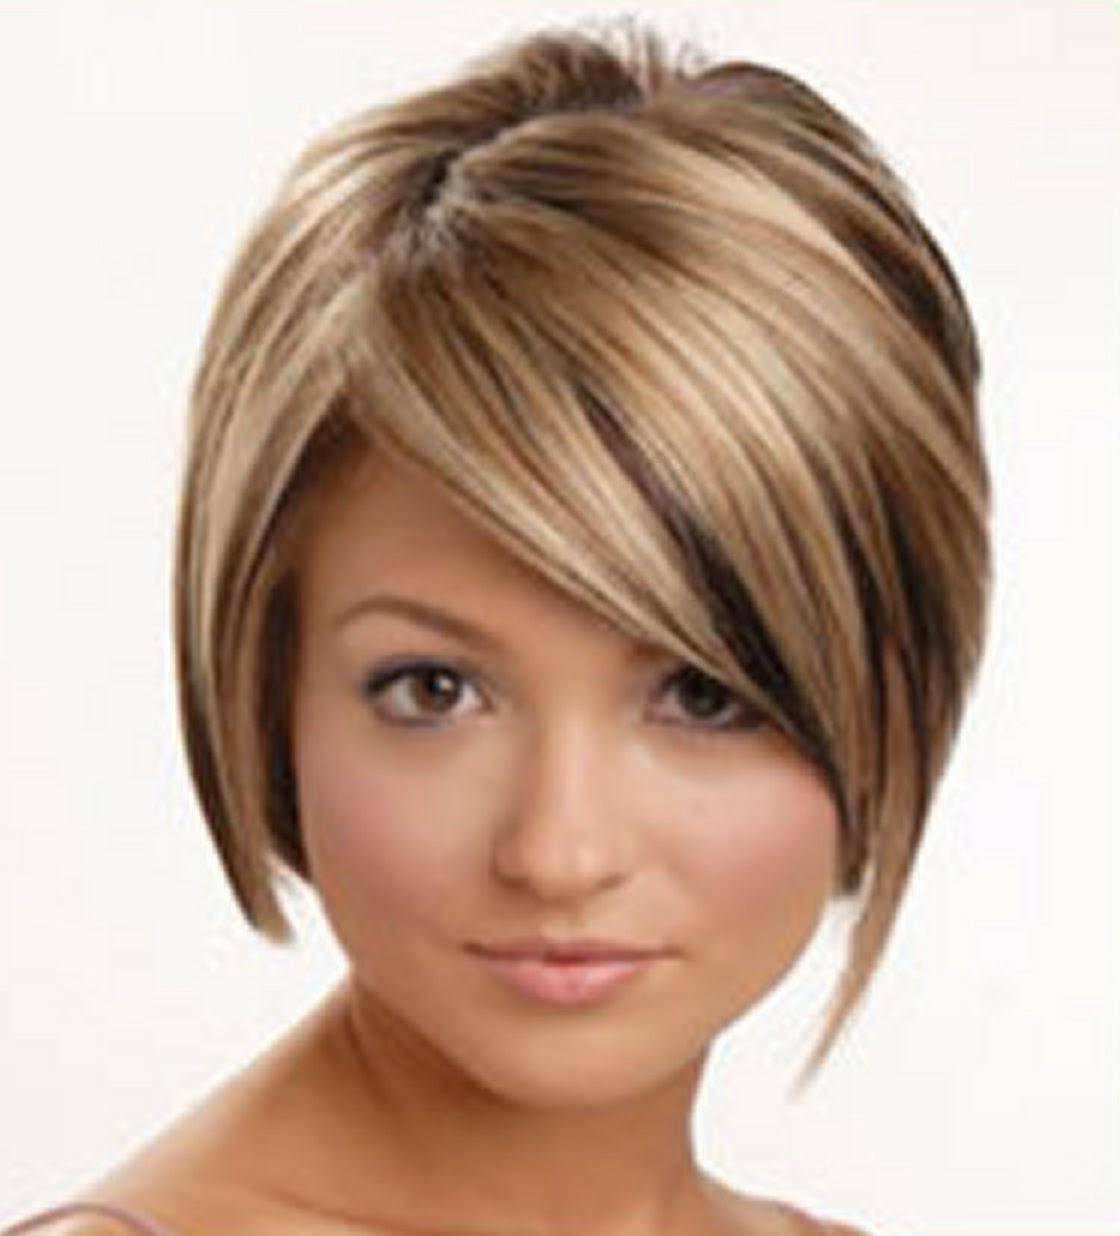 Short Hairstyles For Women With Straight Hair – Short And Cuts Within Cute Short Haircuts For Thin Straight Hair (View 5 of 25)